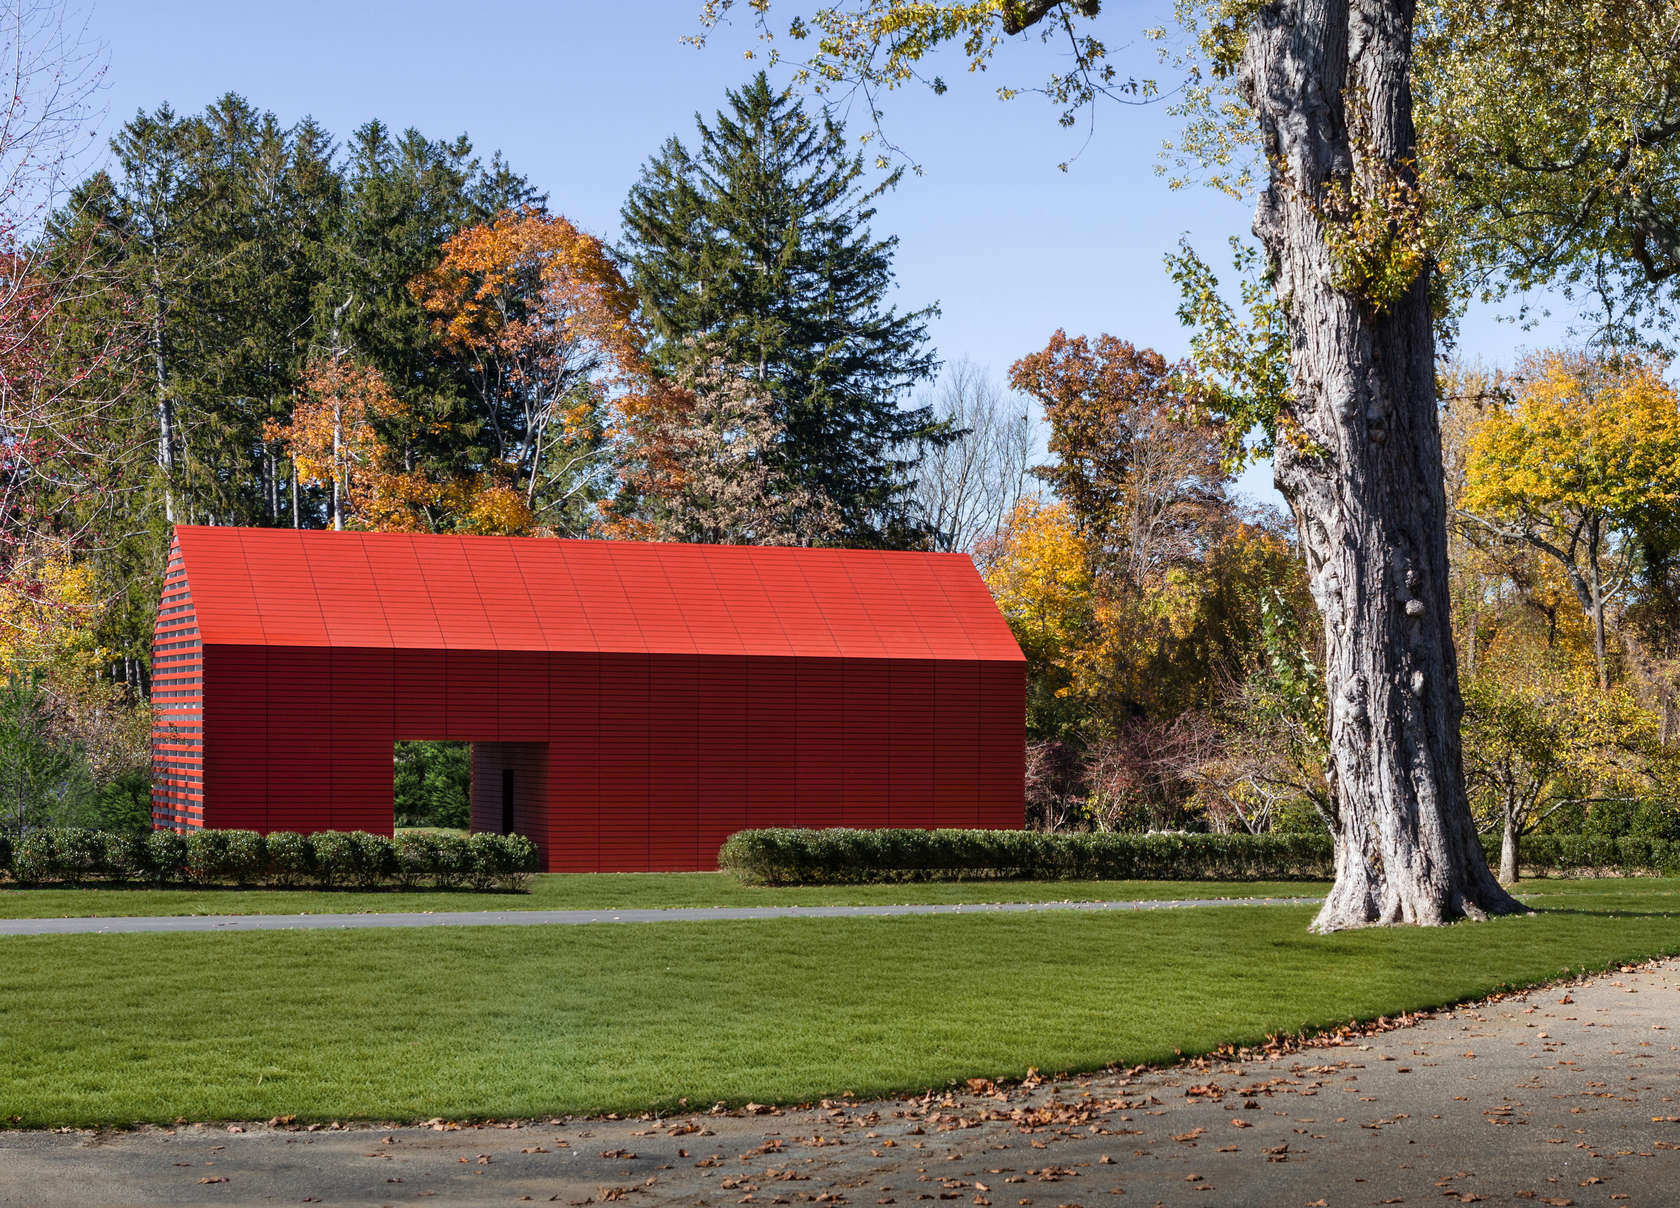 Overall view of Red Barn designed by Roger Ferris + Partners